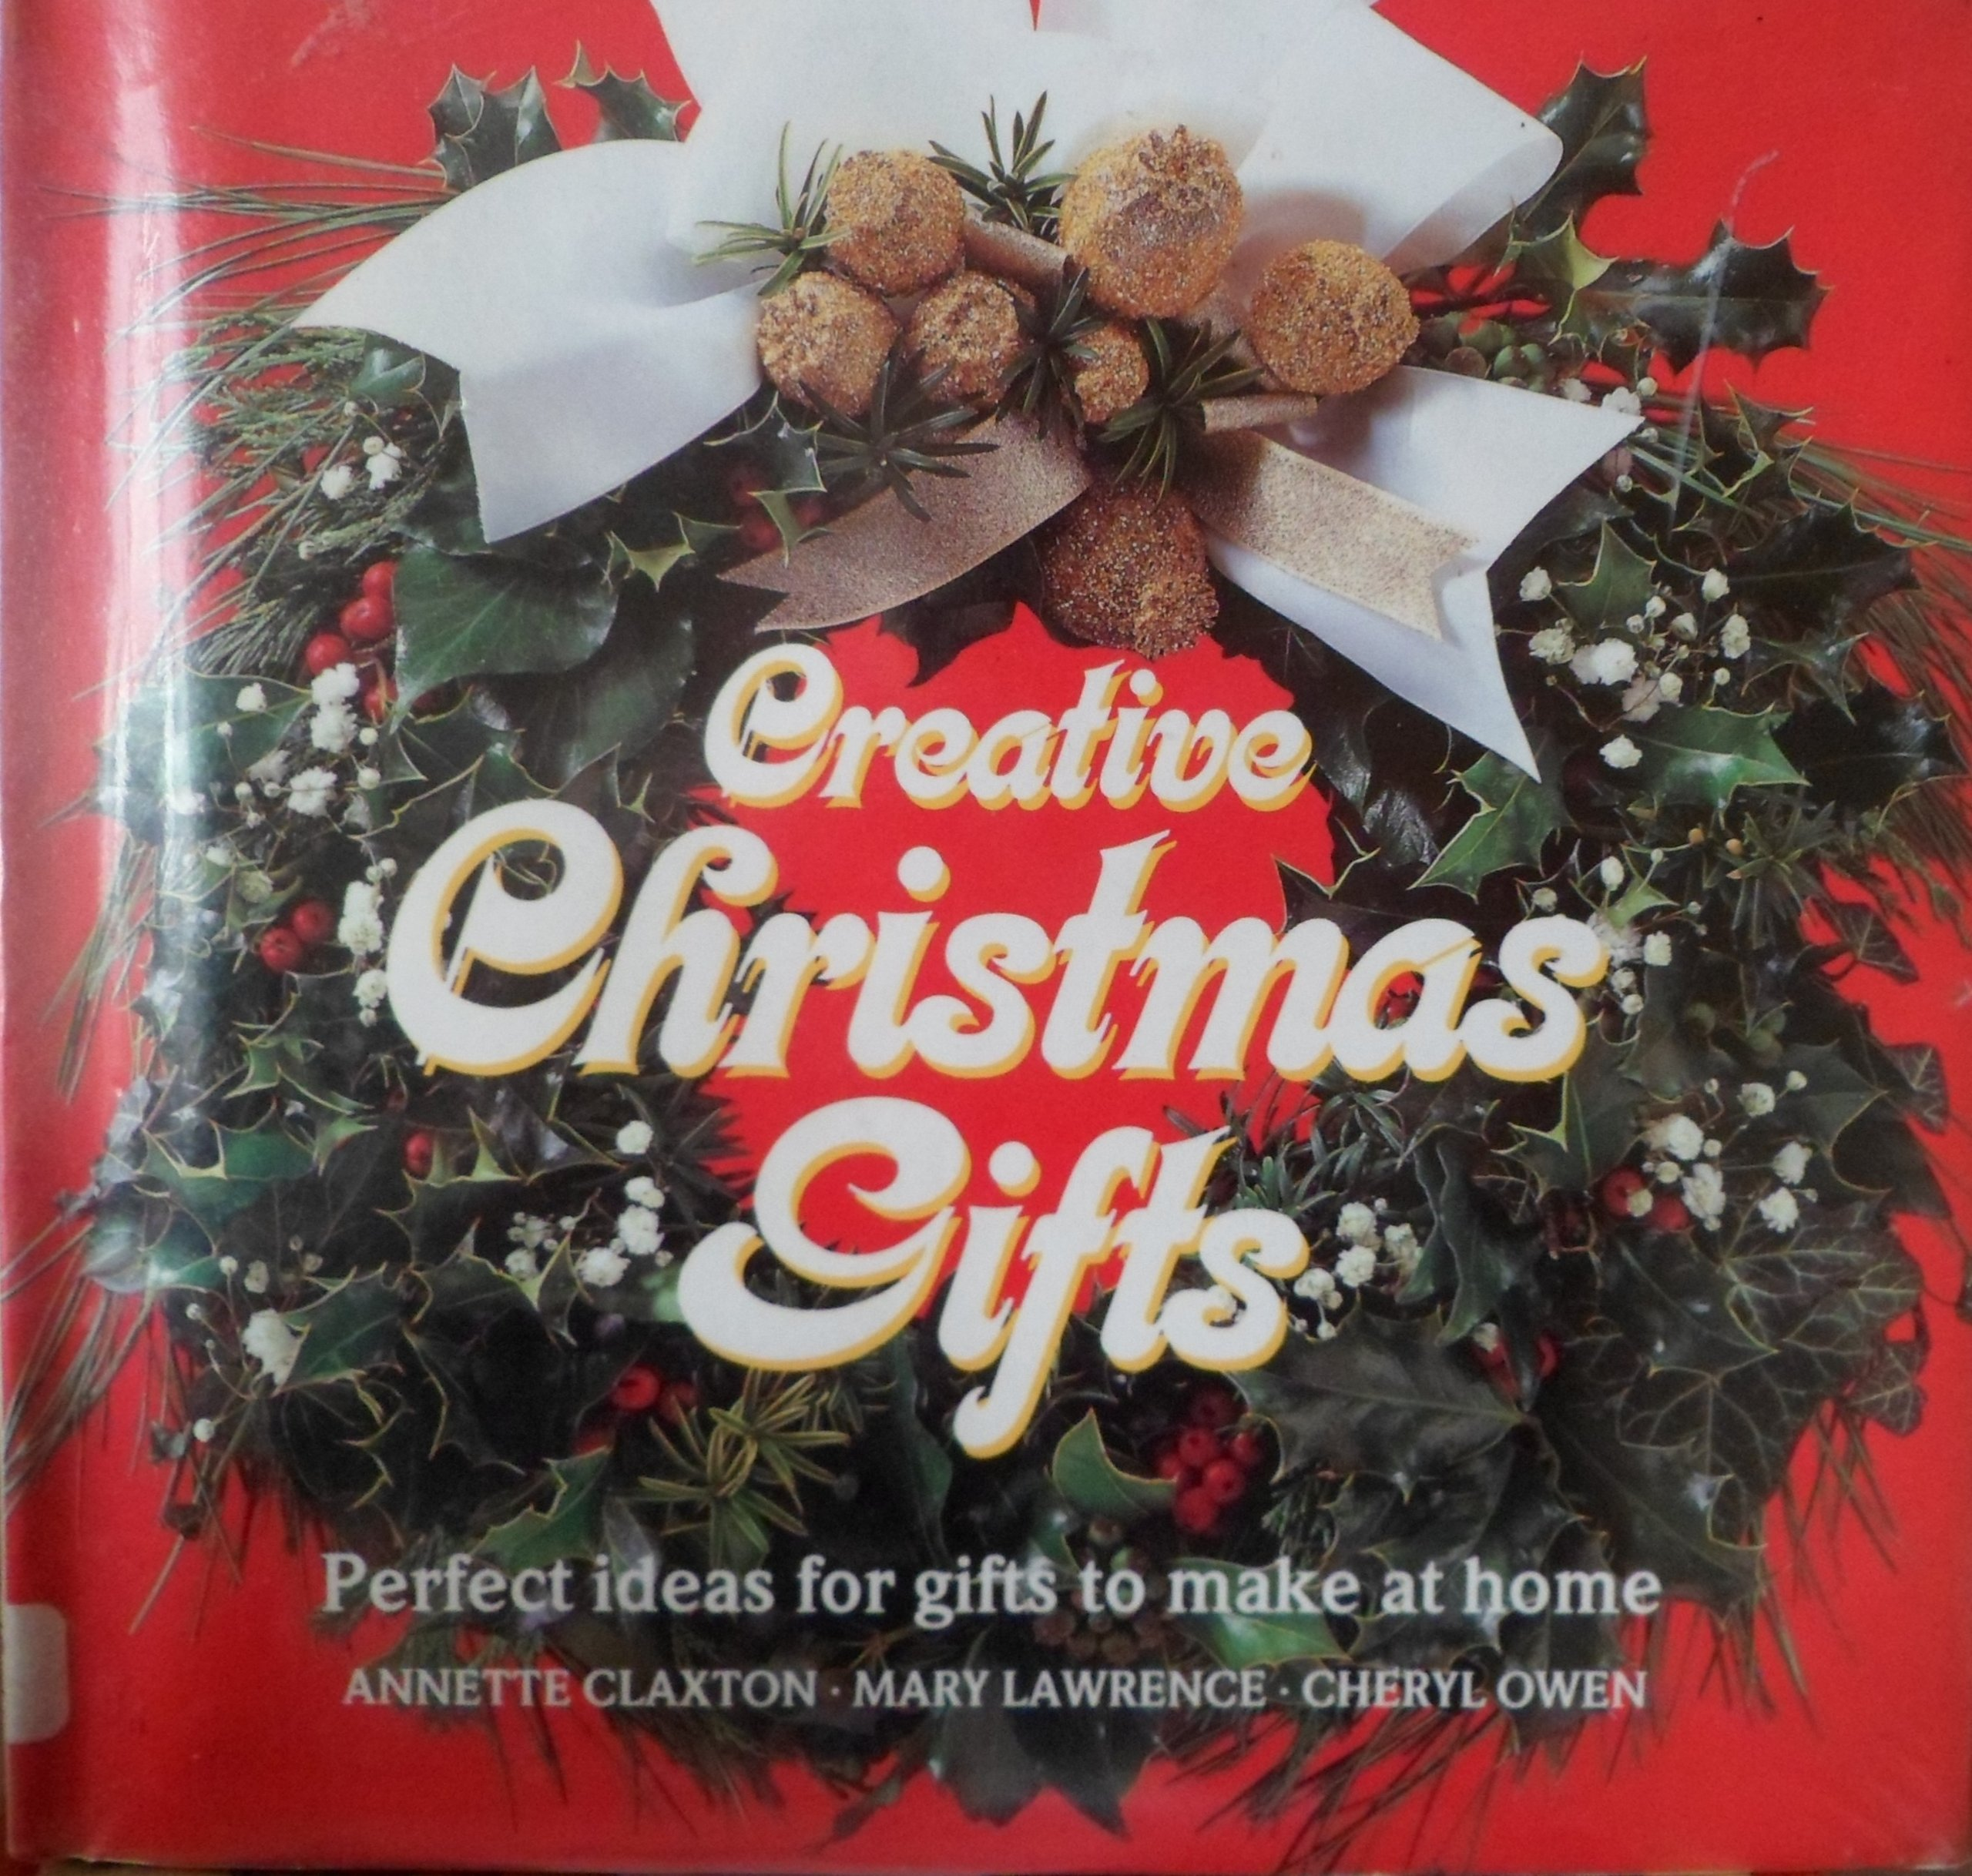 Clever Christmas Gifts.Creative Christmas Gifts Amazon Co Uk Annette Claxton